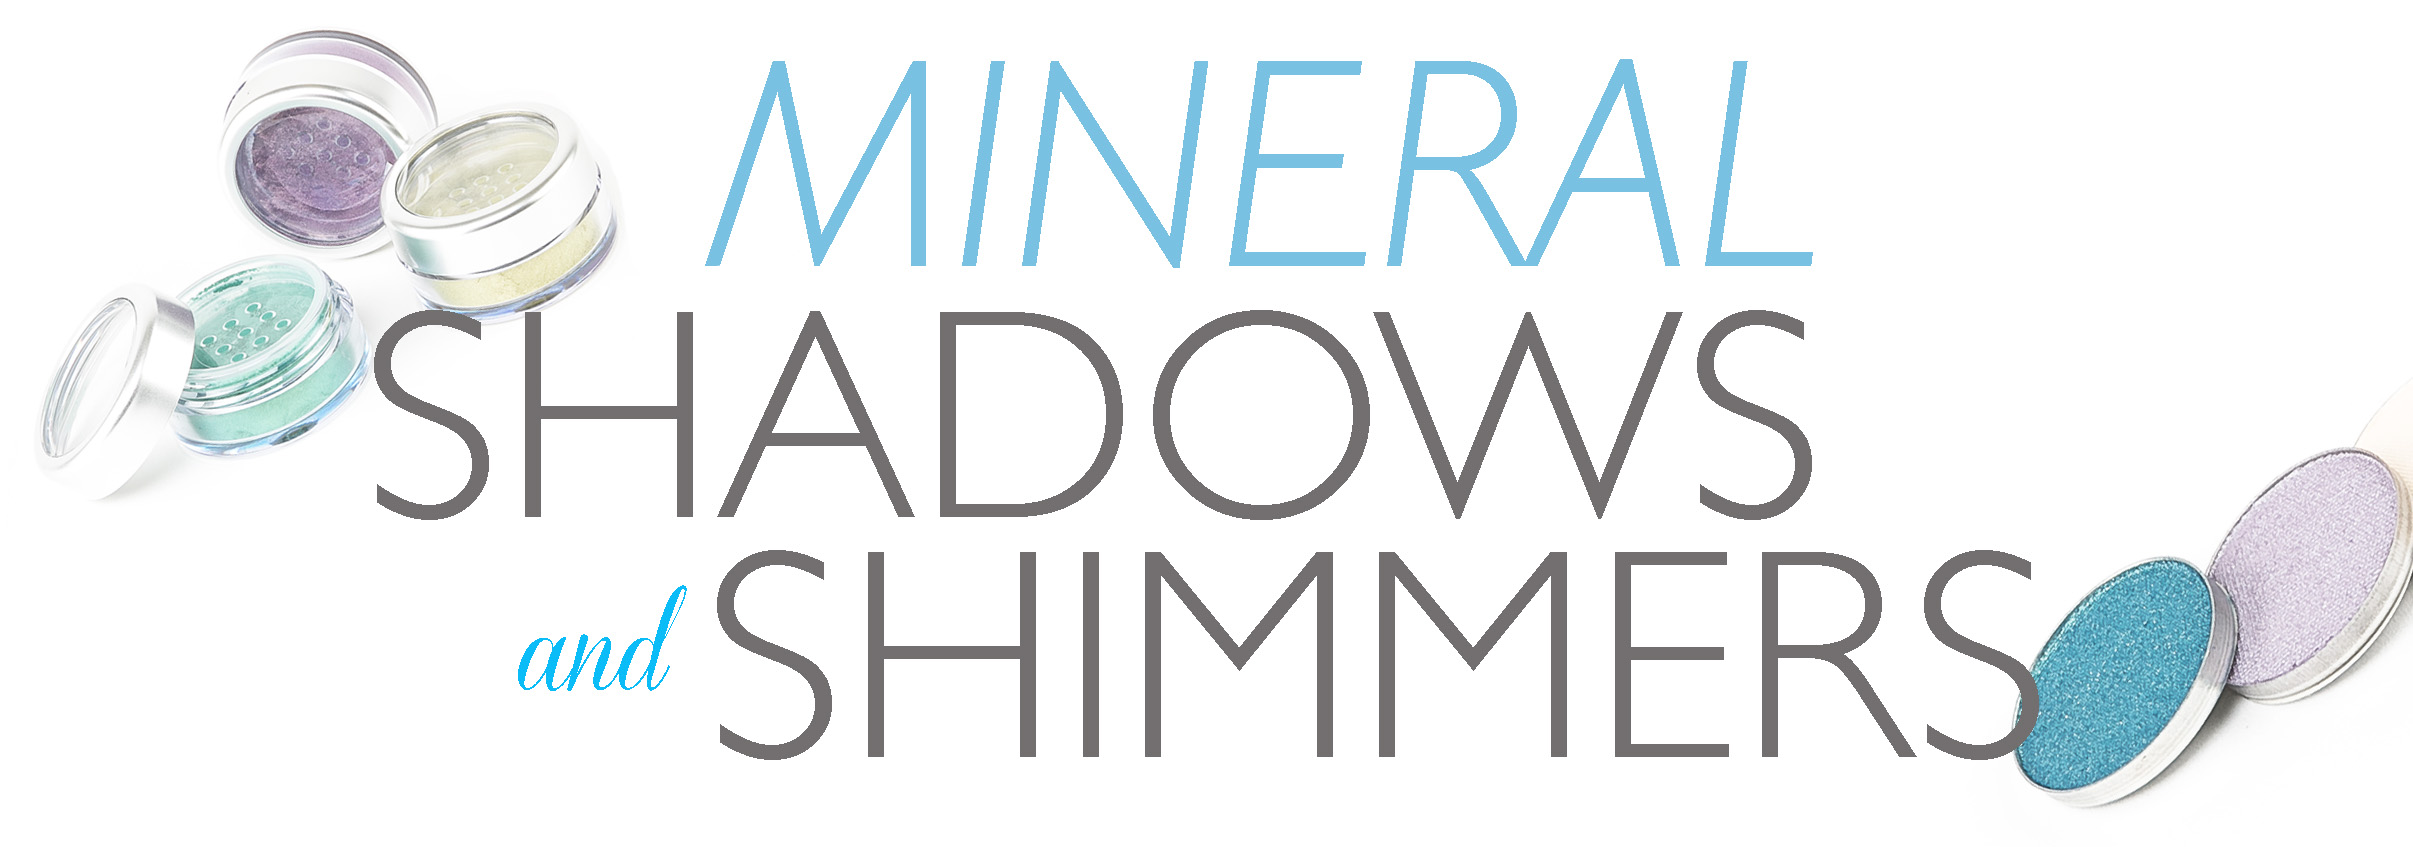 Mineral Shadows & Shimmers.jpg